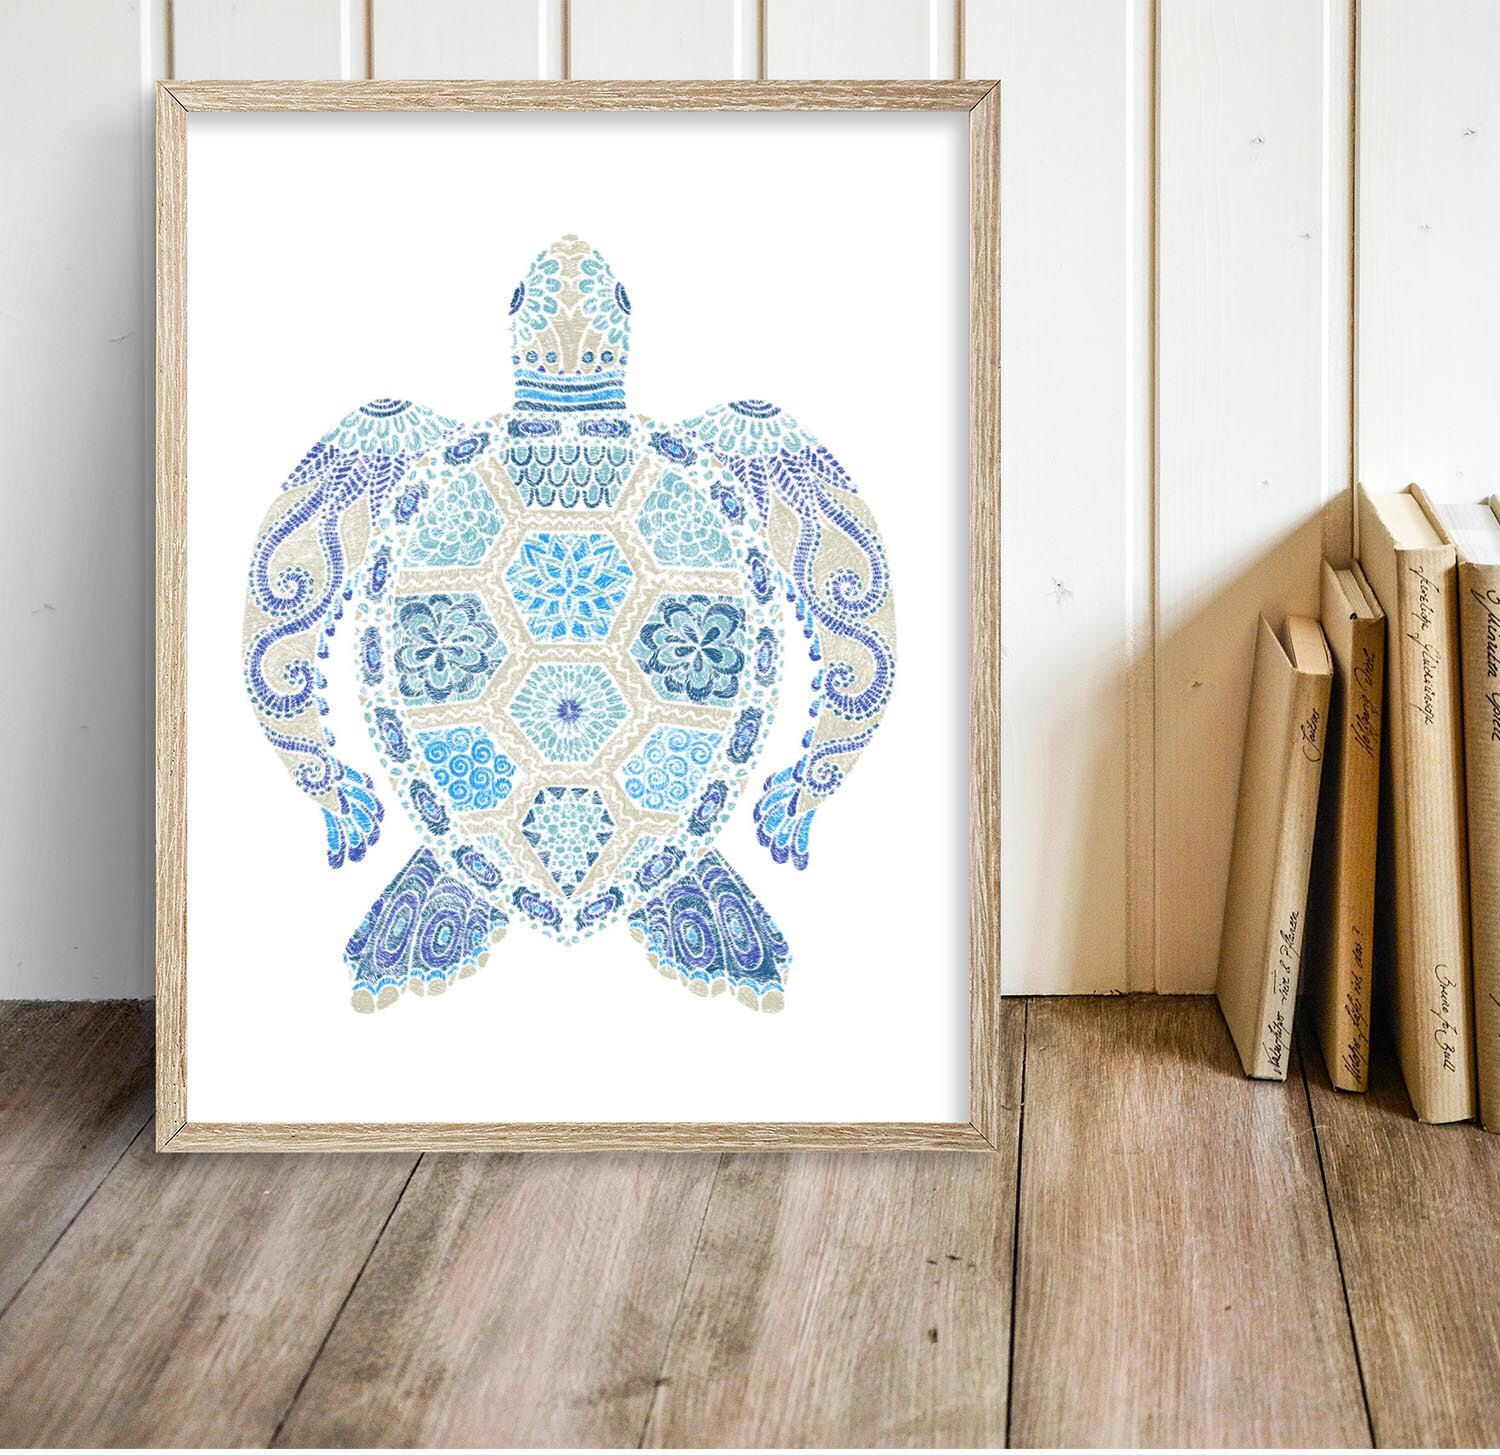 abstract turtles green blue sea wall home pinterest turtle make for decor electric metal decorations cute of new adorned images sculptures beautiful art your three painting